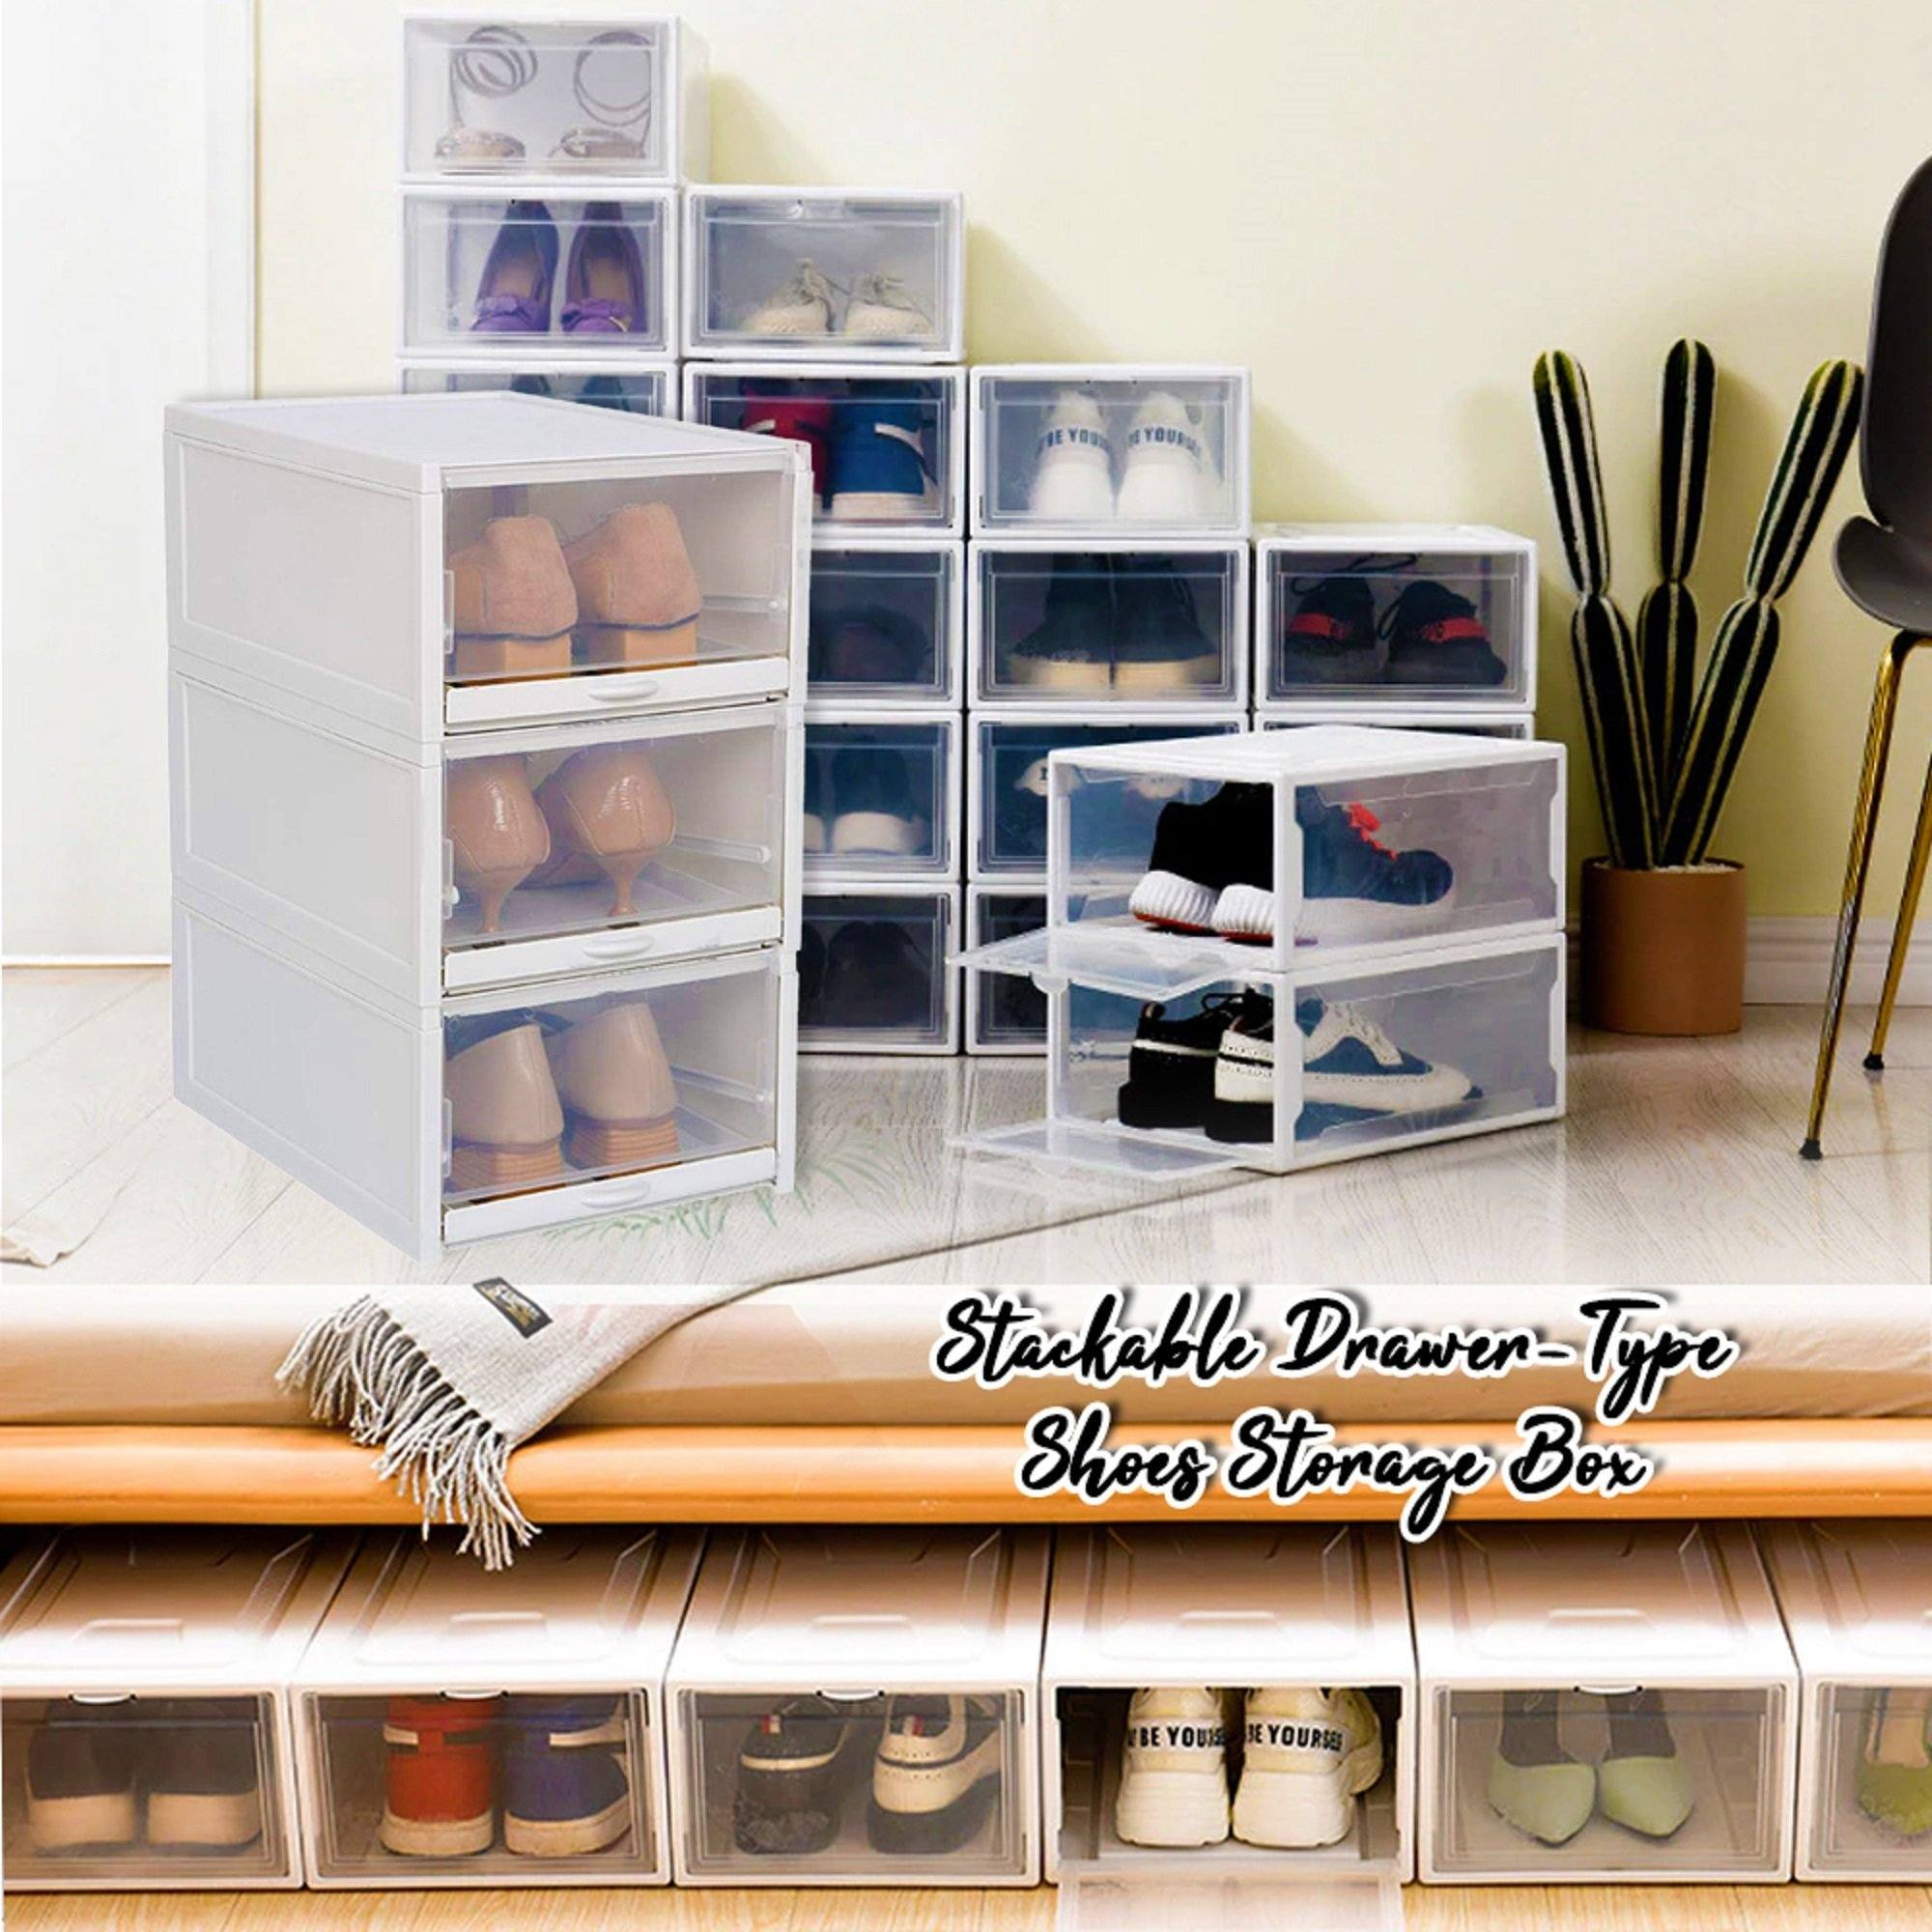 Stackable Drawer-Type Shoes Storage Box